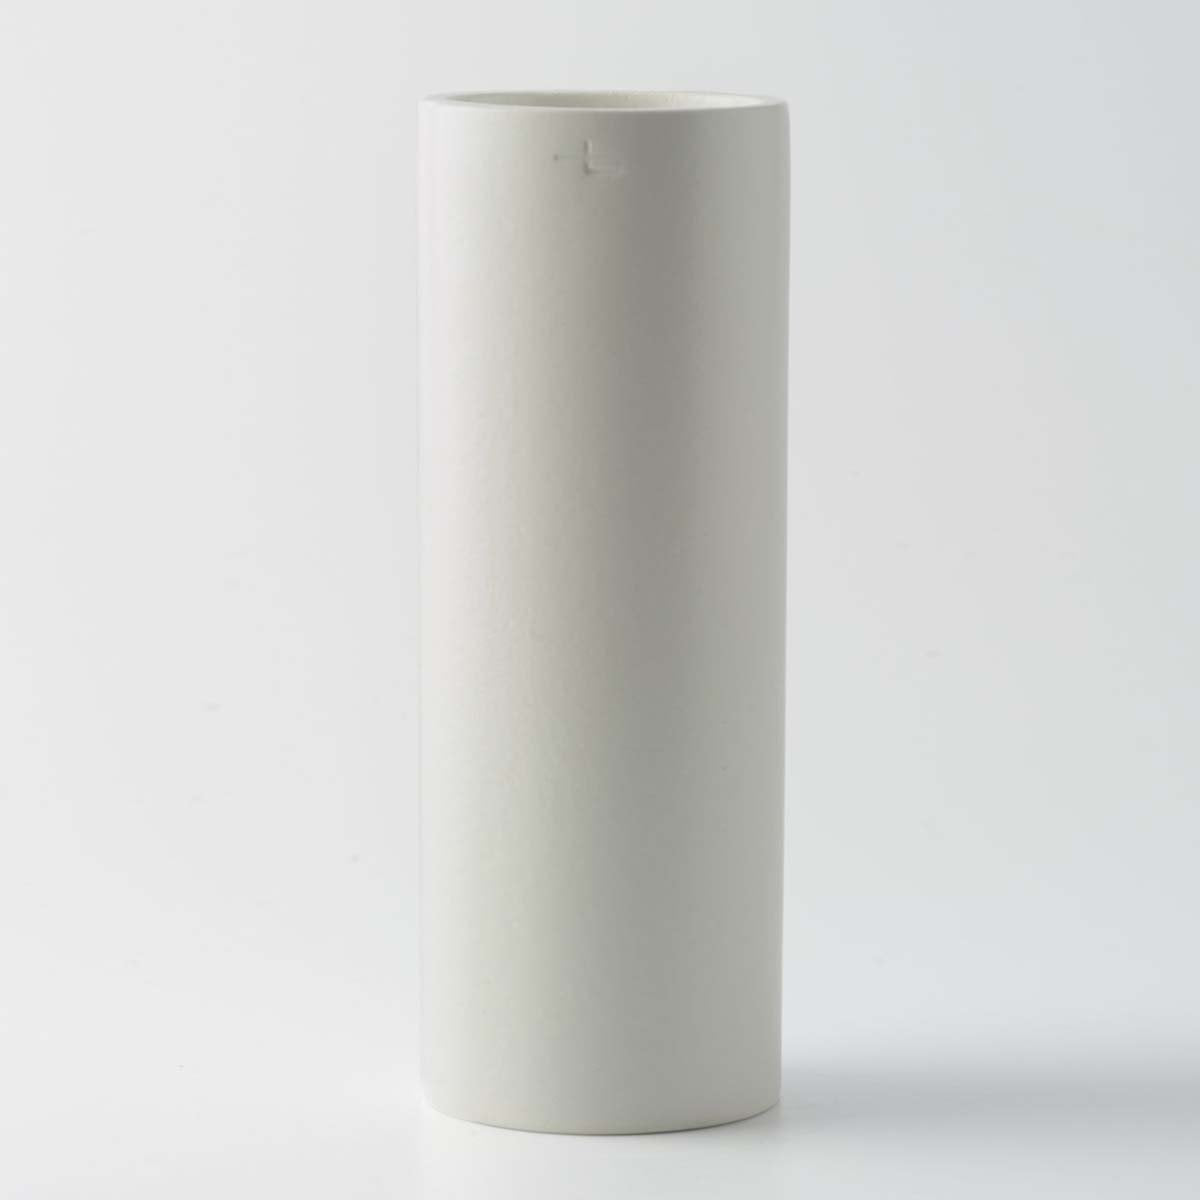 VASE CYLINDER by Vorster & Braye at SARZA. cylinder, decor, homeware, vase, Vorster&Braye